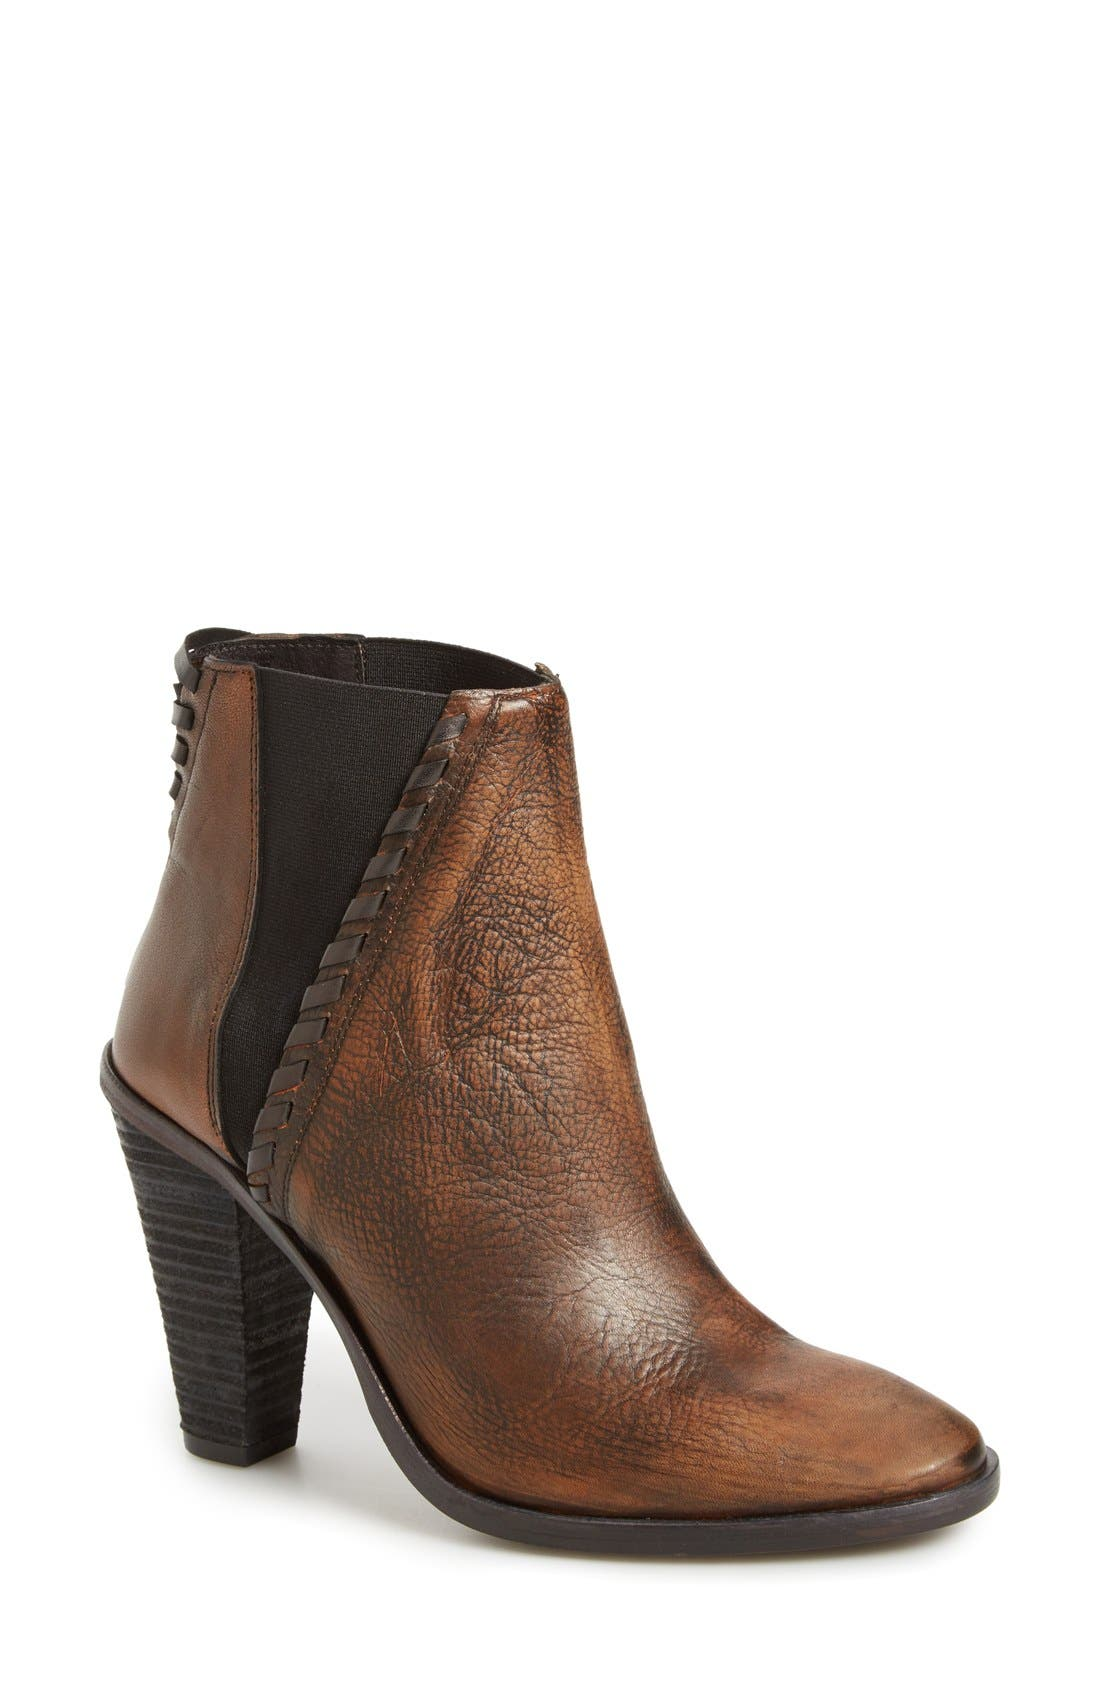 'Stardust' Chelsea Boot,                         Main,                         color, Brown/ Bronze Leather